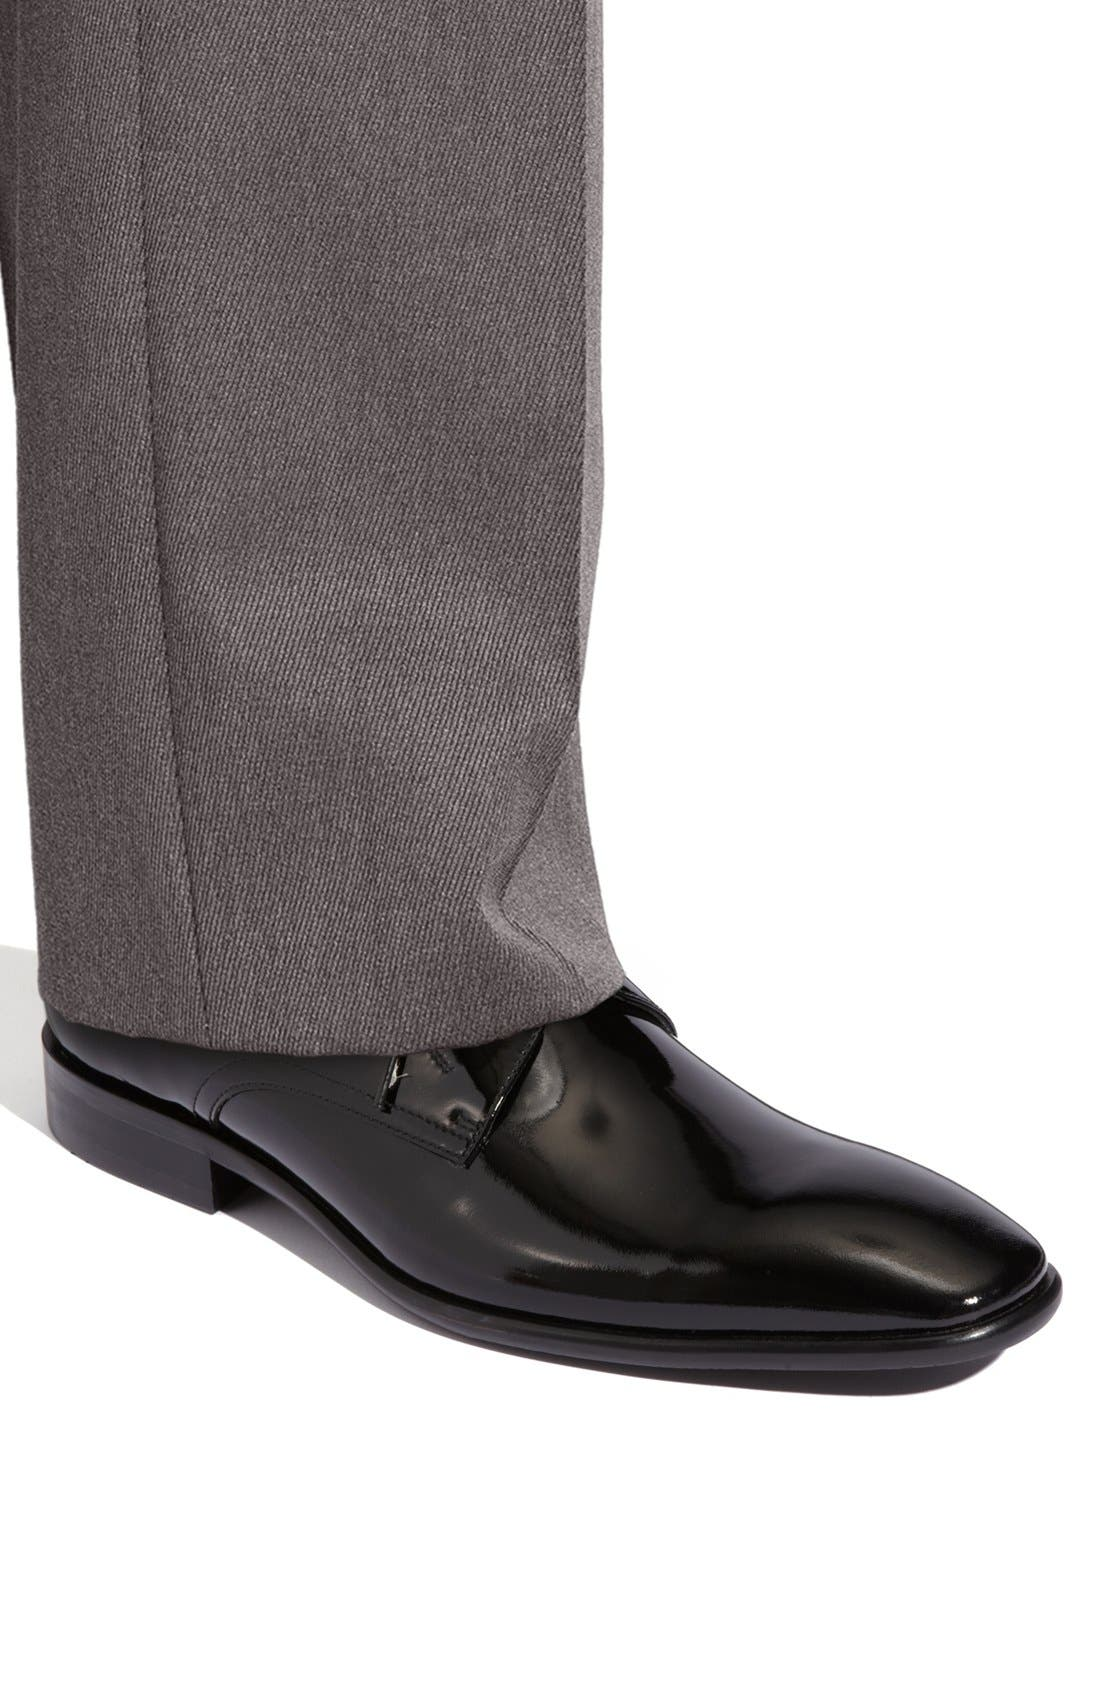 Alternate Image 5  - Calibrate 'Oscar' Patent Leather Dress Shoe (Men)